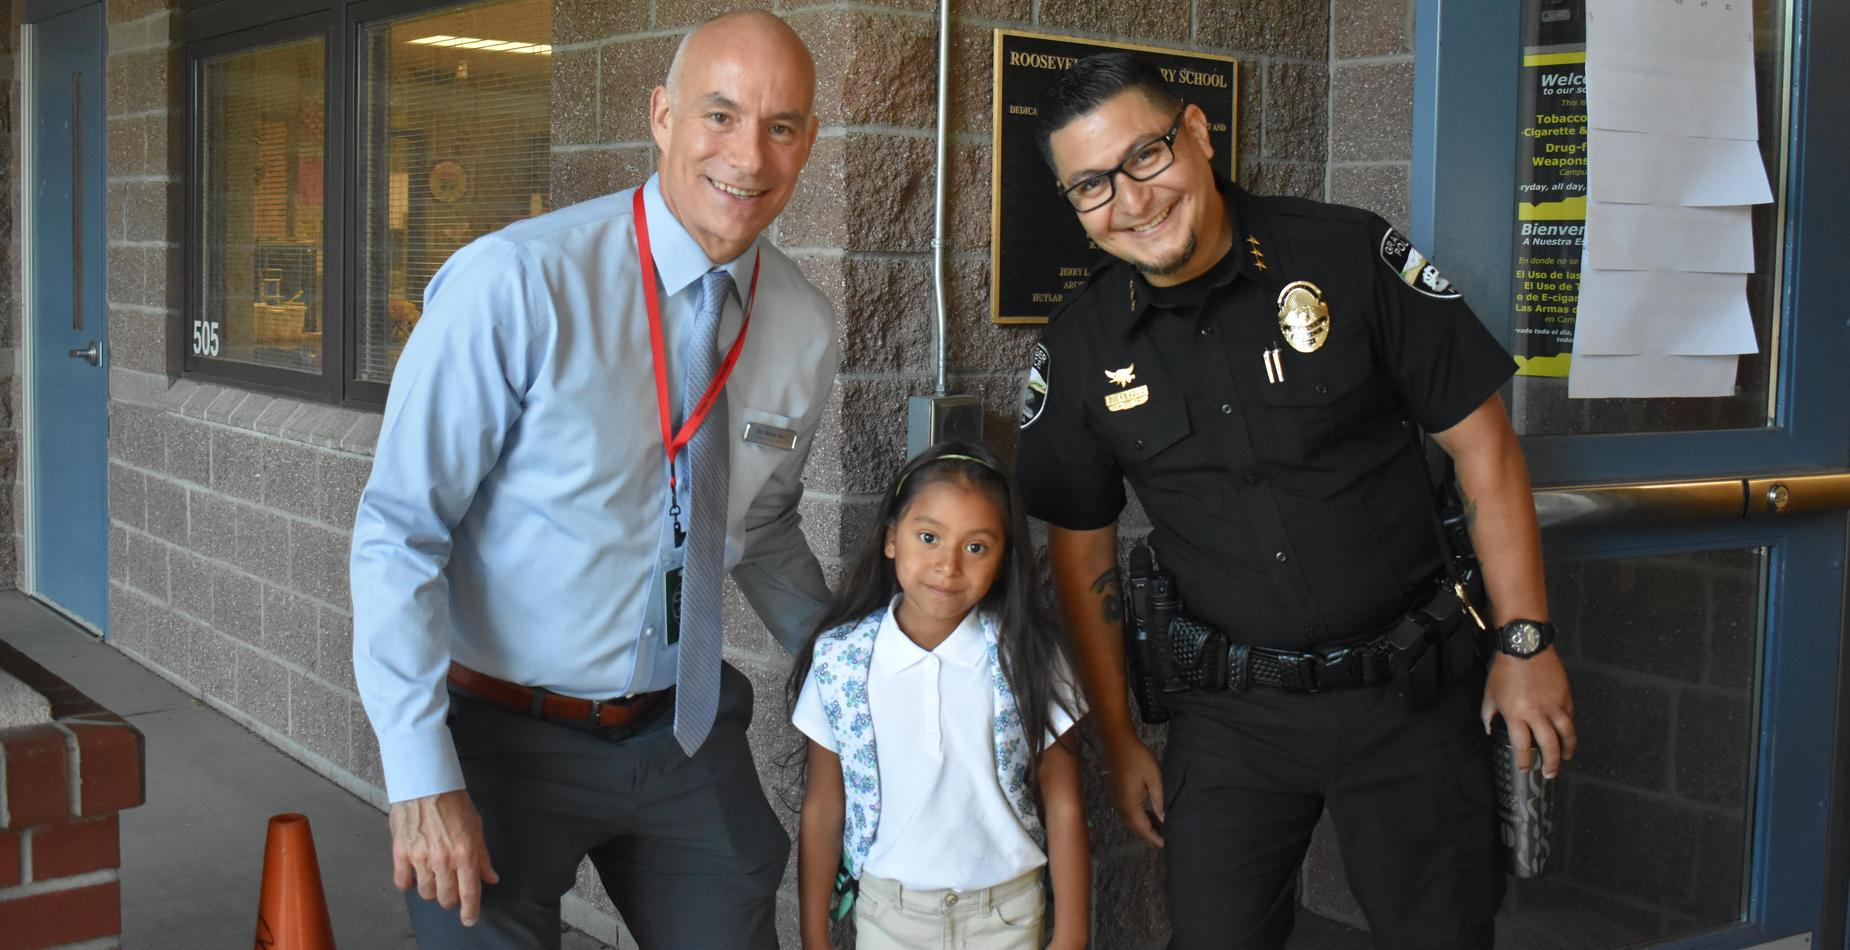 Our superintendent, RTO officer, and a first grade girl on the first day of school.